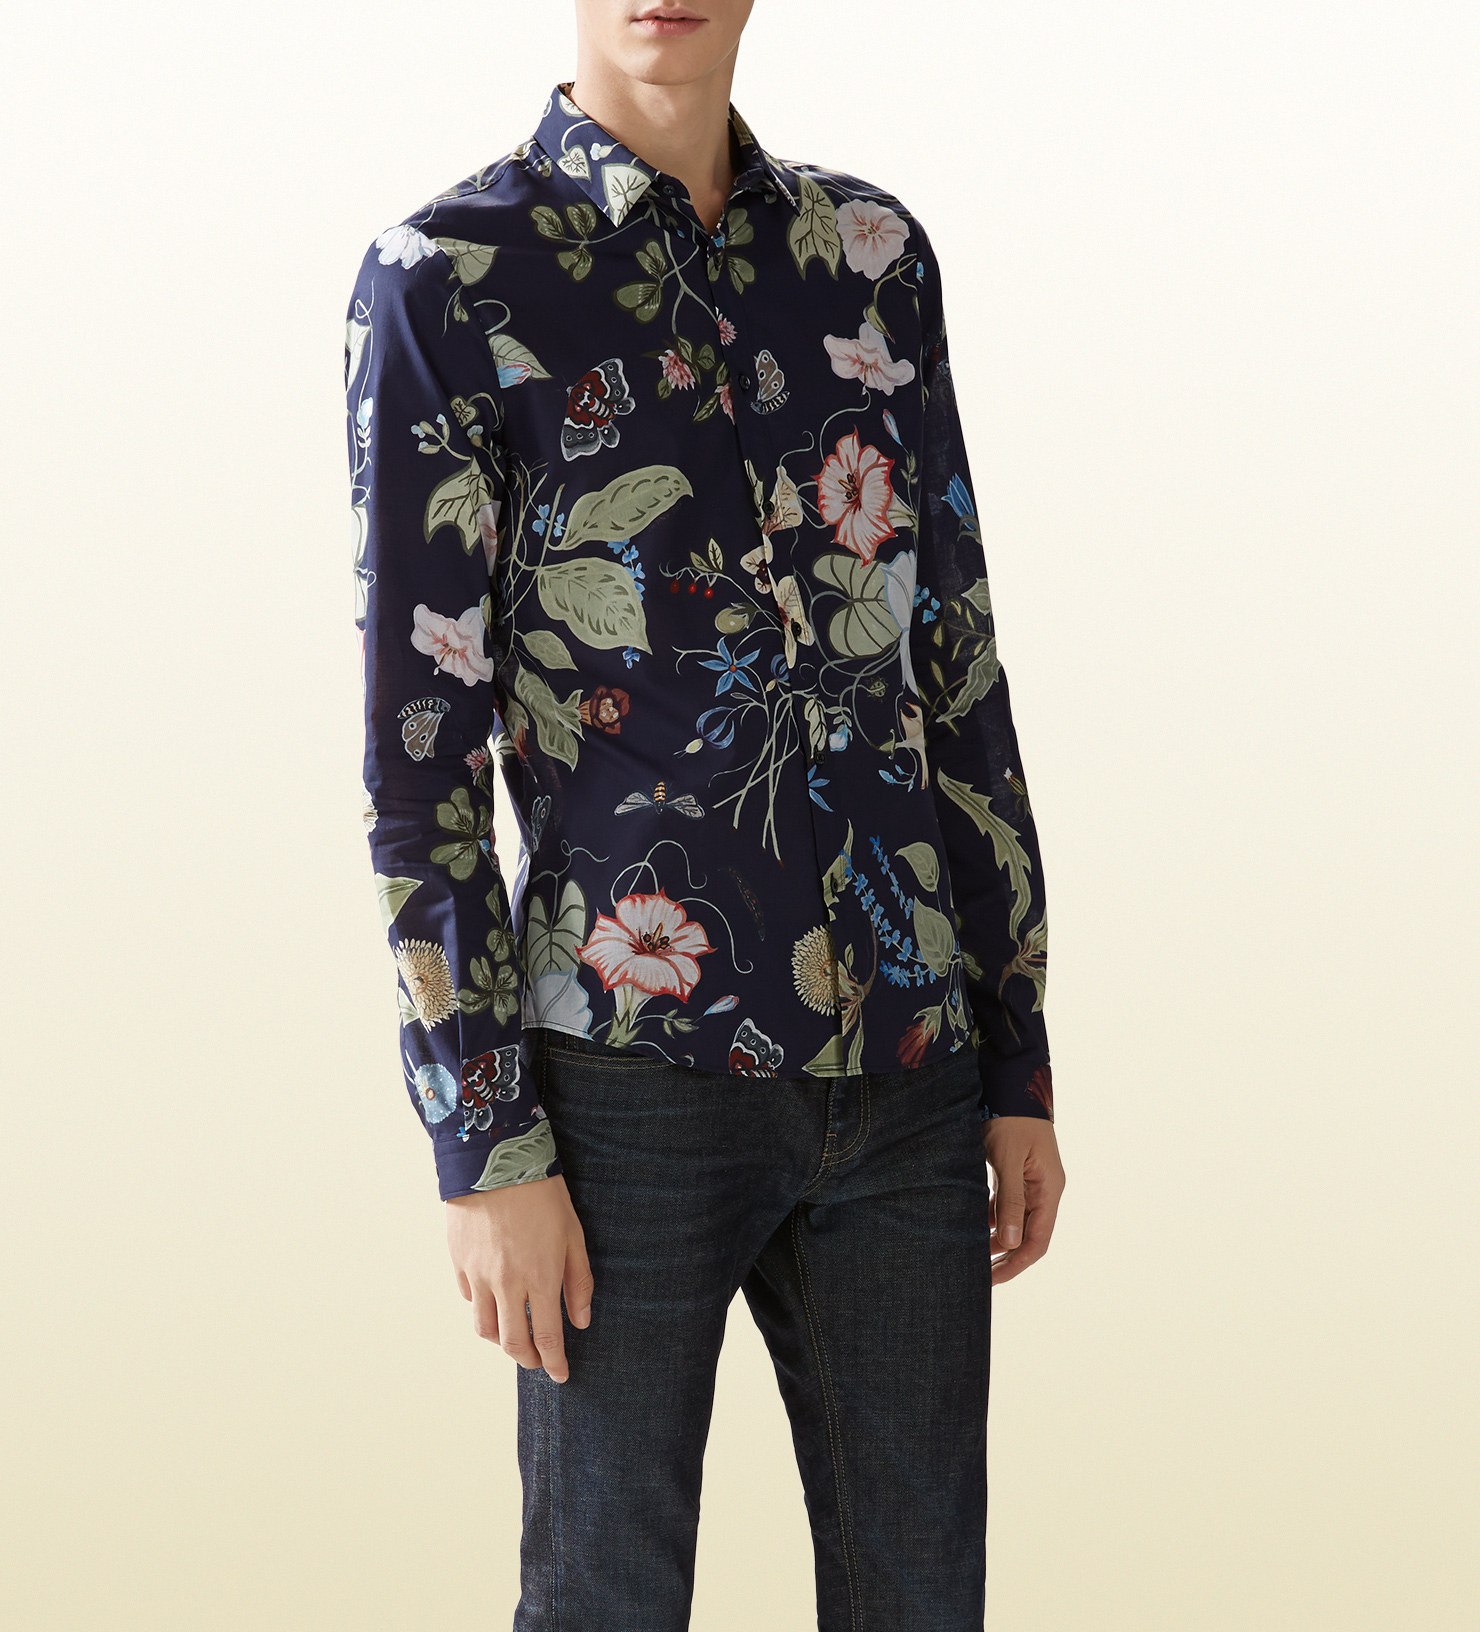 Gucci Dress Shirts Mens Bcd Tofu House